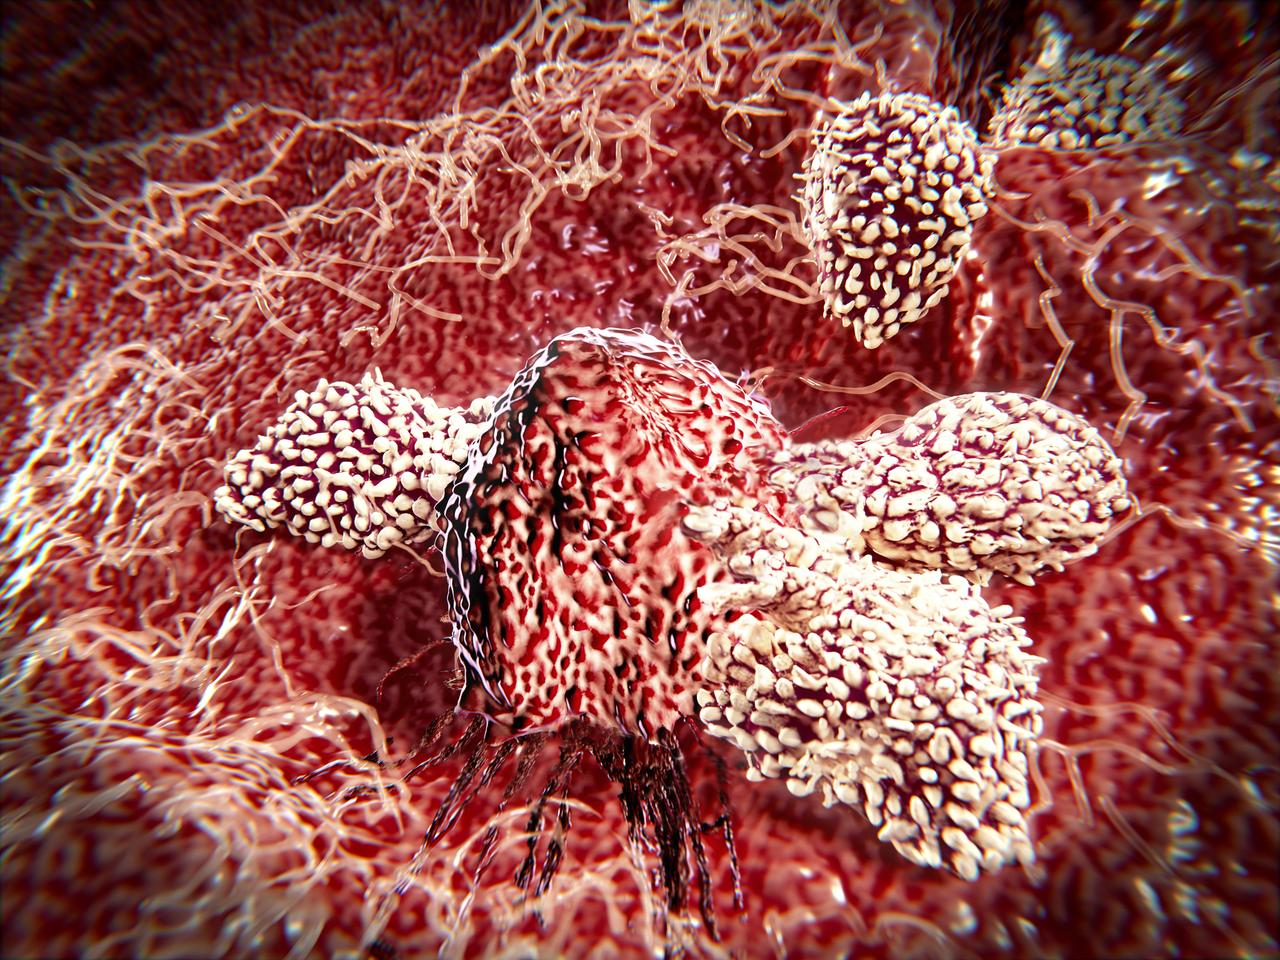 Researchers have discovered how immune cells keep from destroying themselves